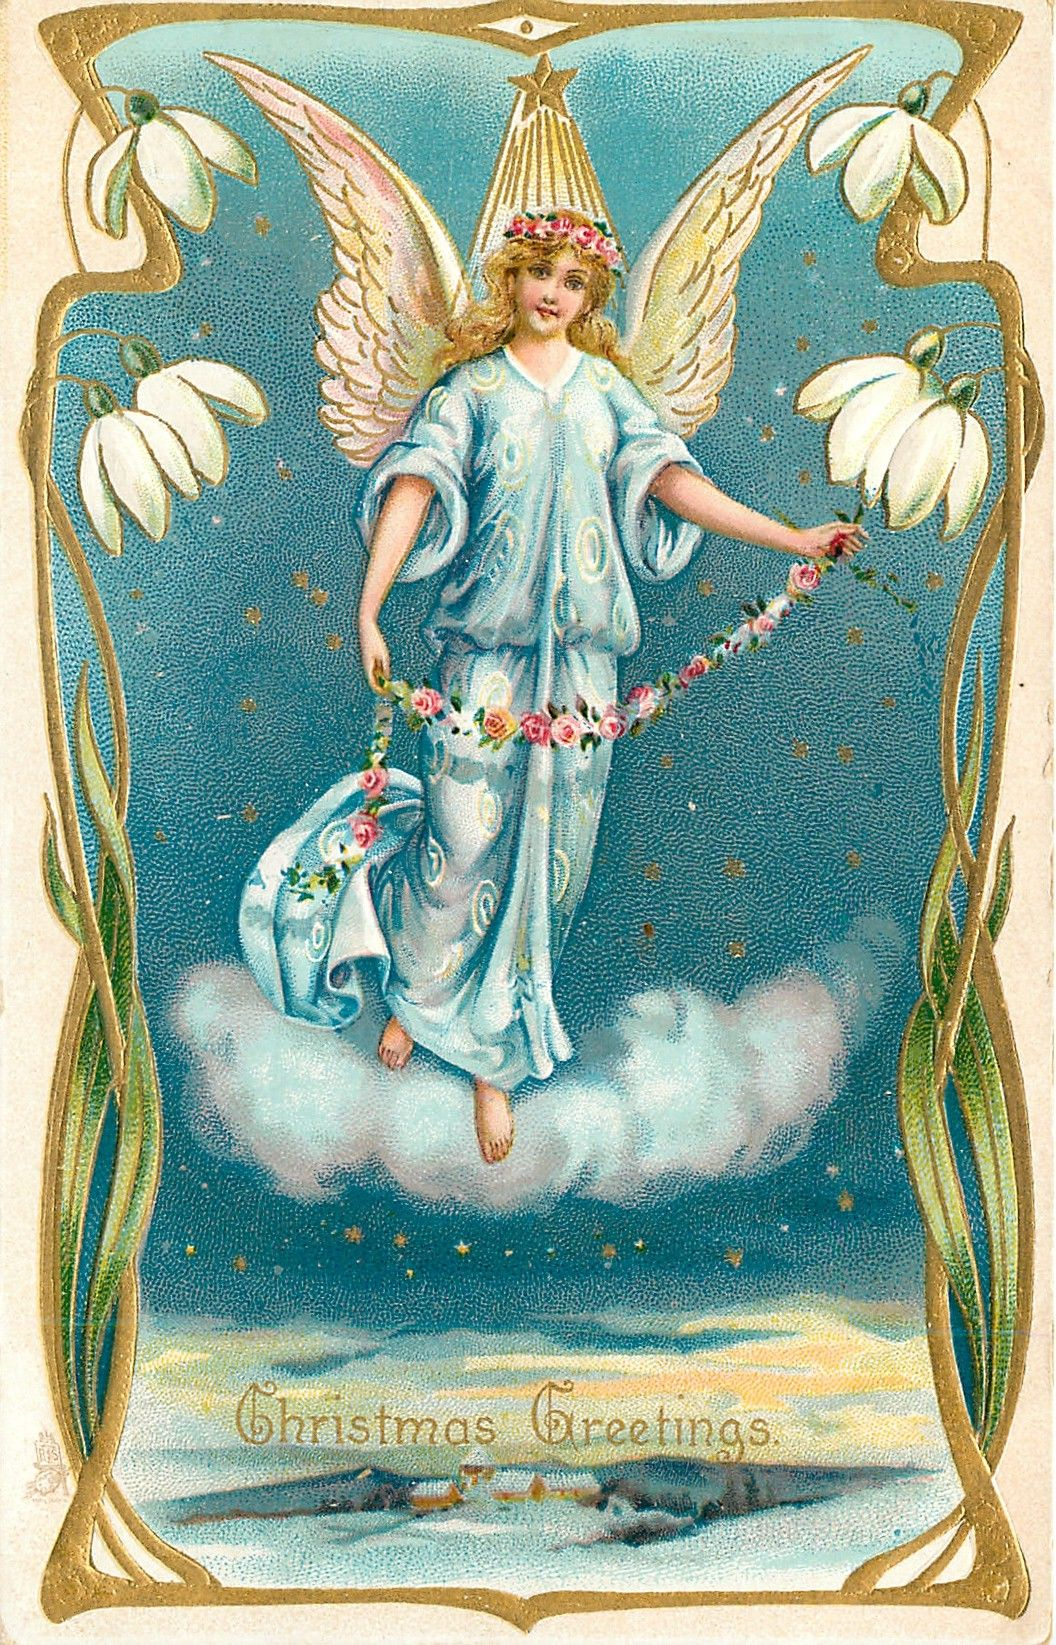 Full Sized Image: CHRISTMAS GREETINGS angel in blue stands on clouds, ornate border with snowdrops - TuckDB